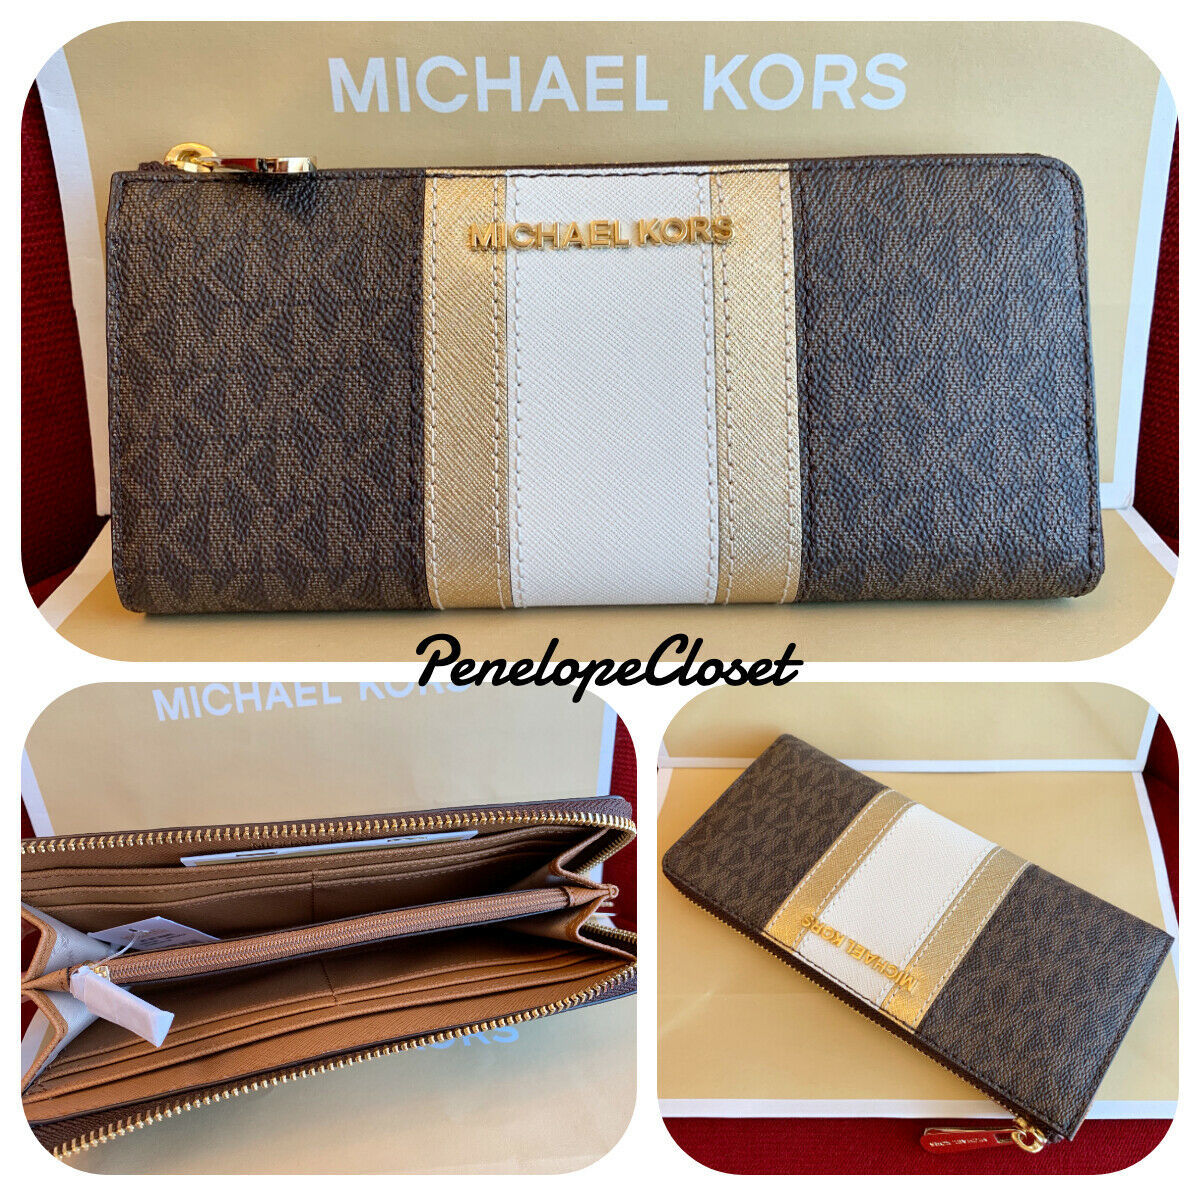 e00f30db35b8e6 NWT MICHAEL KORS JET SET TRAVEL LOGO PVC CENTER STRIPE 3/4 ZIP WALLET IN  BROWN - $75.88